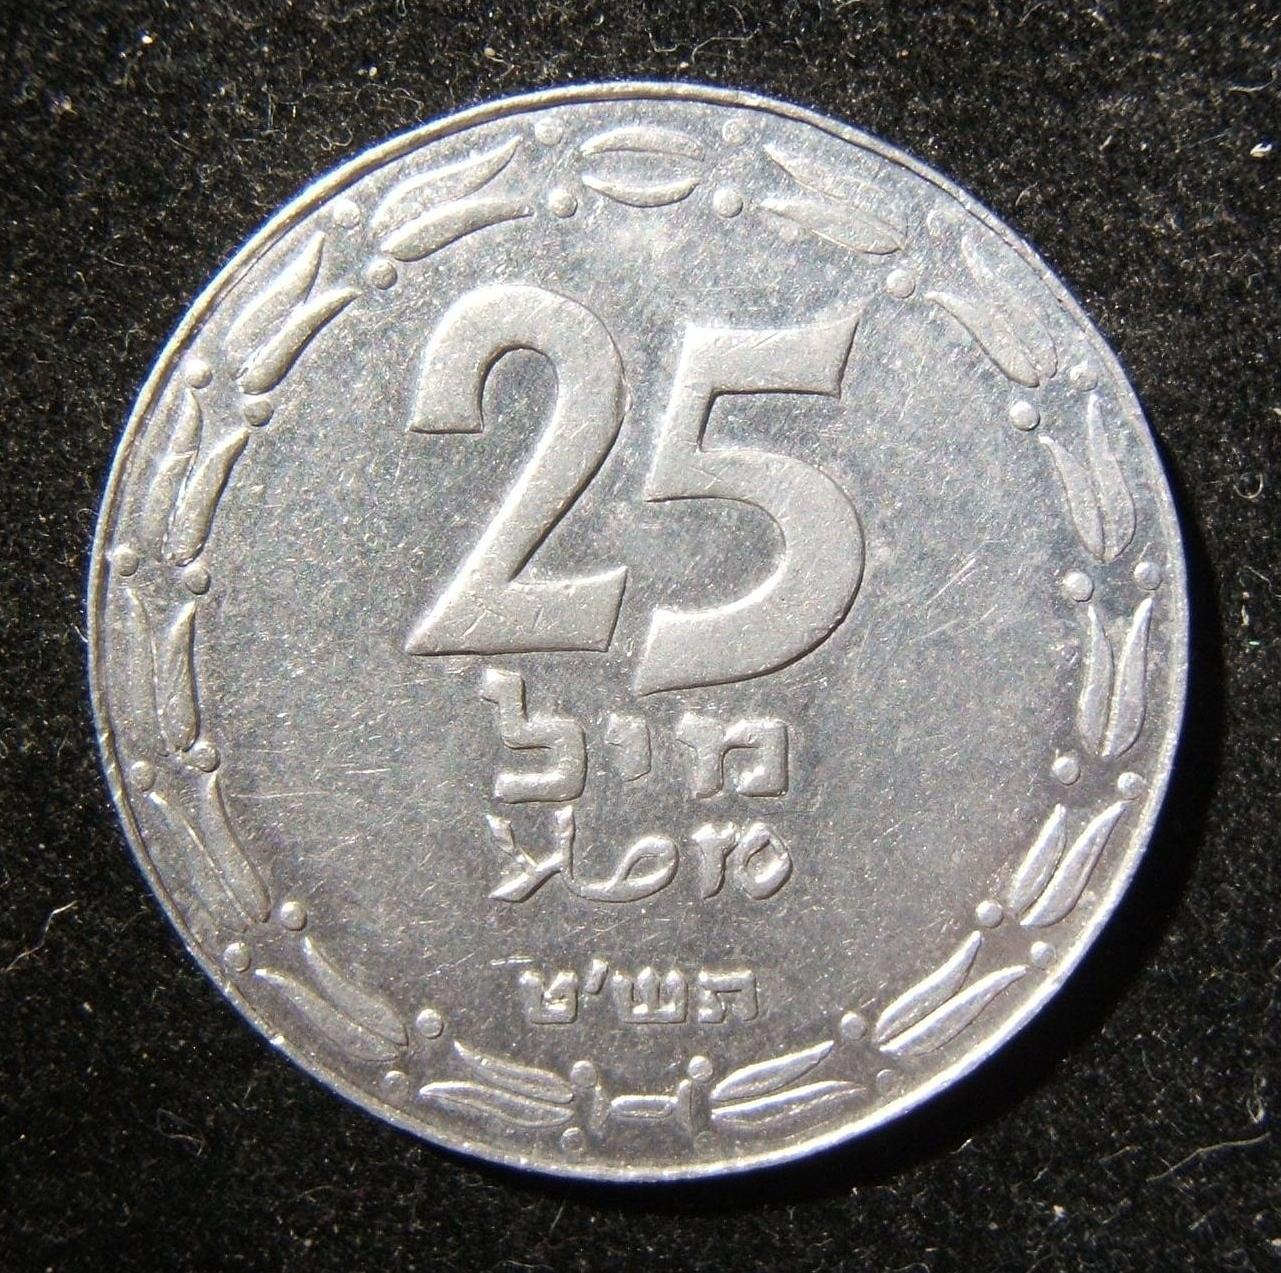 Israel: 25 Mils, 1949 open link issue in aluminum; EF-AU (KM-8, P-2). Very light wear, few bagmarks and nice dull finish; full bead-frame on obverse - scarce as such.